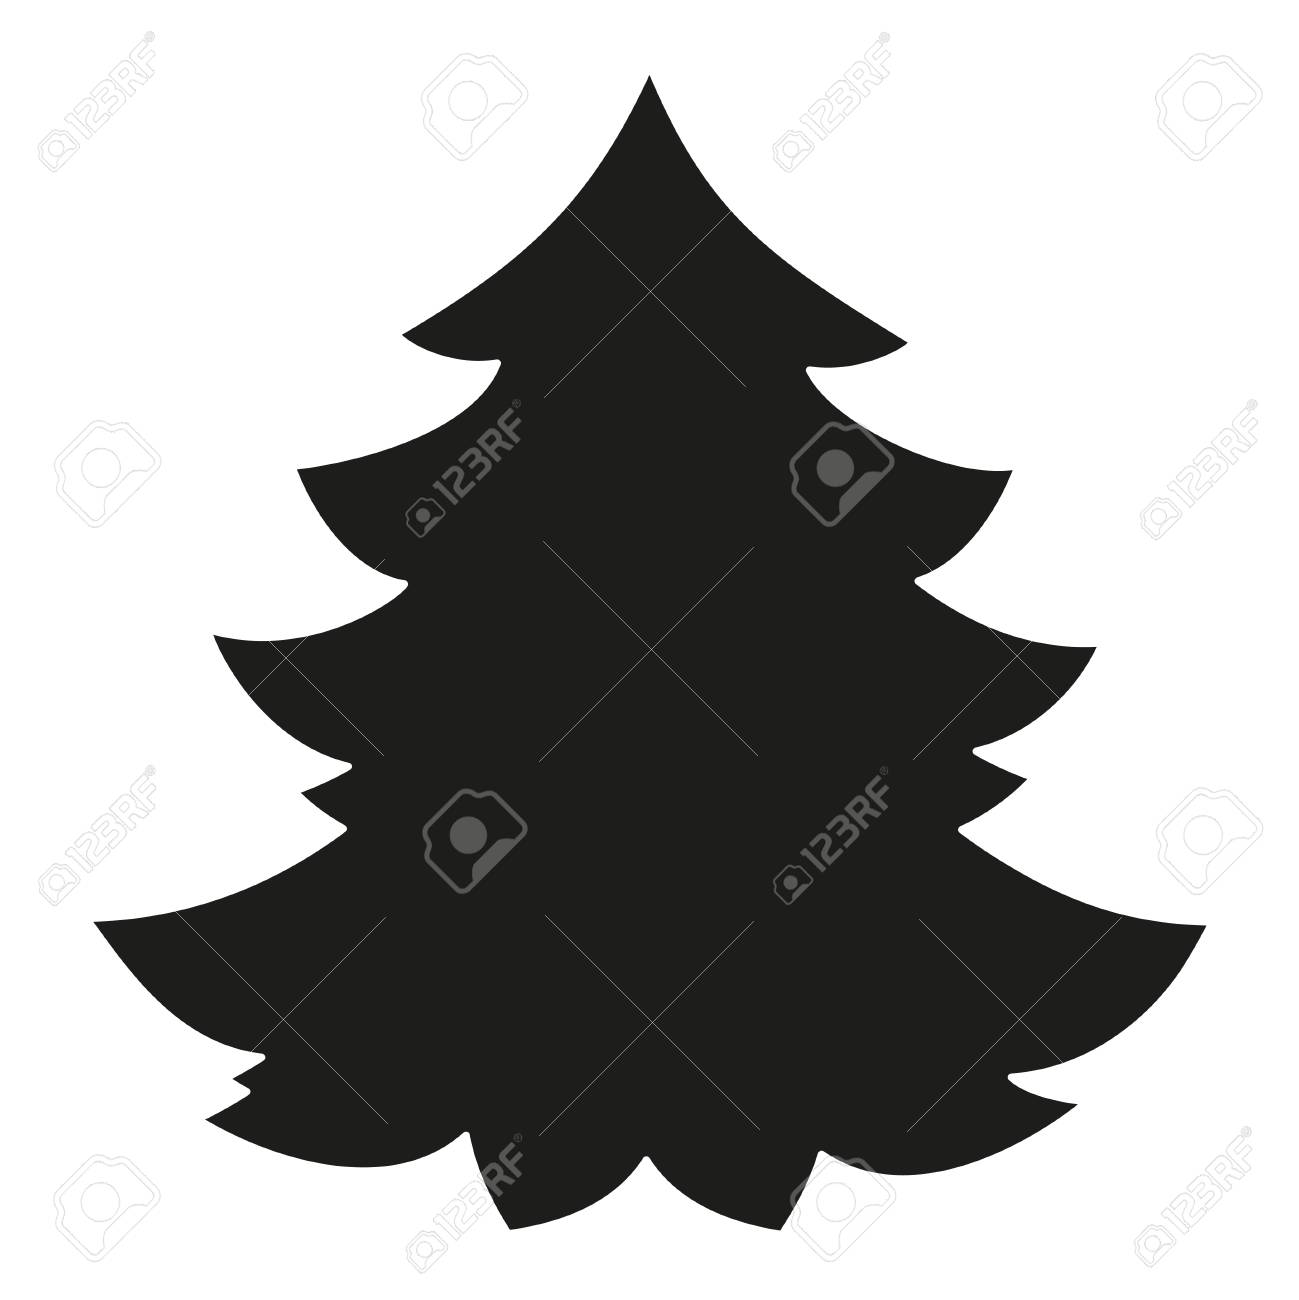 Christmas Tree Clipart Silhouette.Black And White Christmas Tree Silhouette New Year Holiday Themed